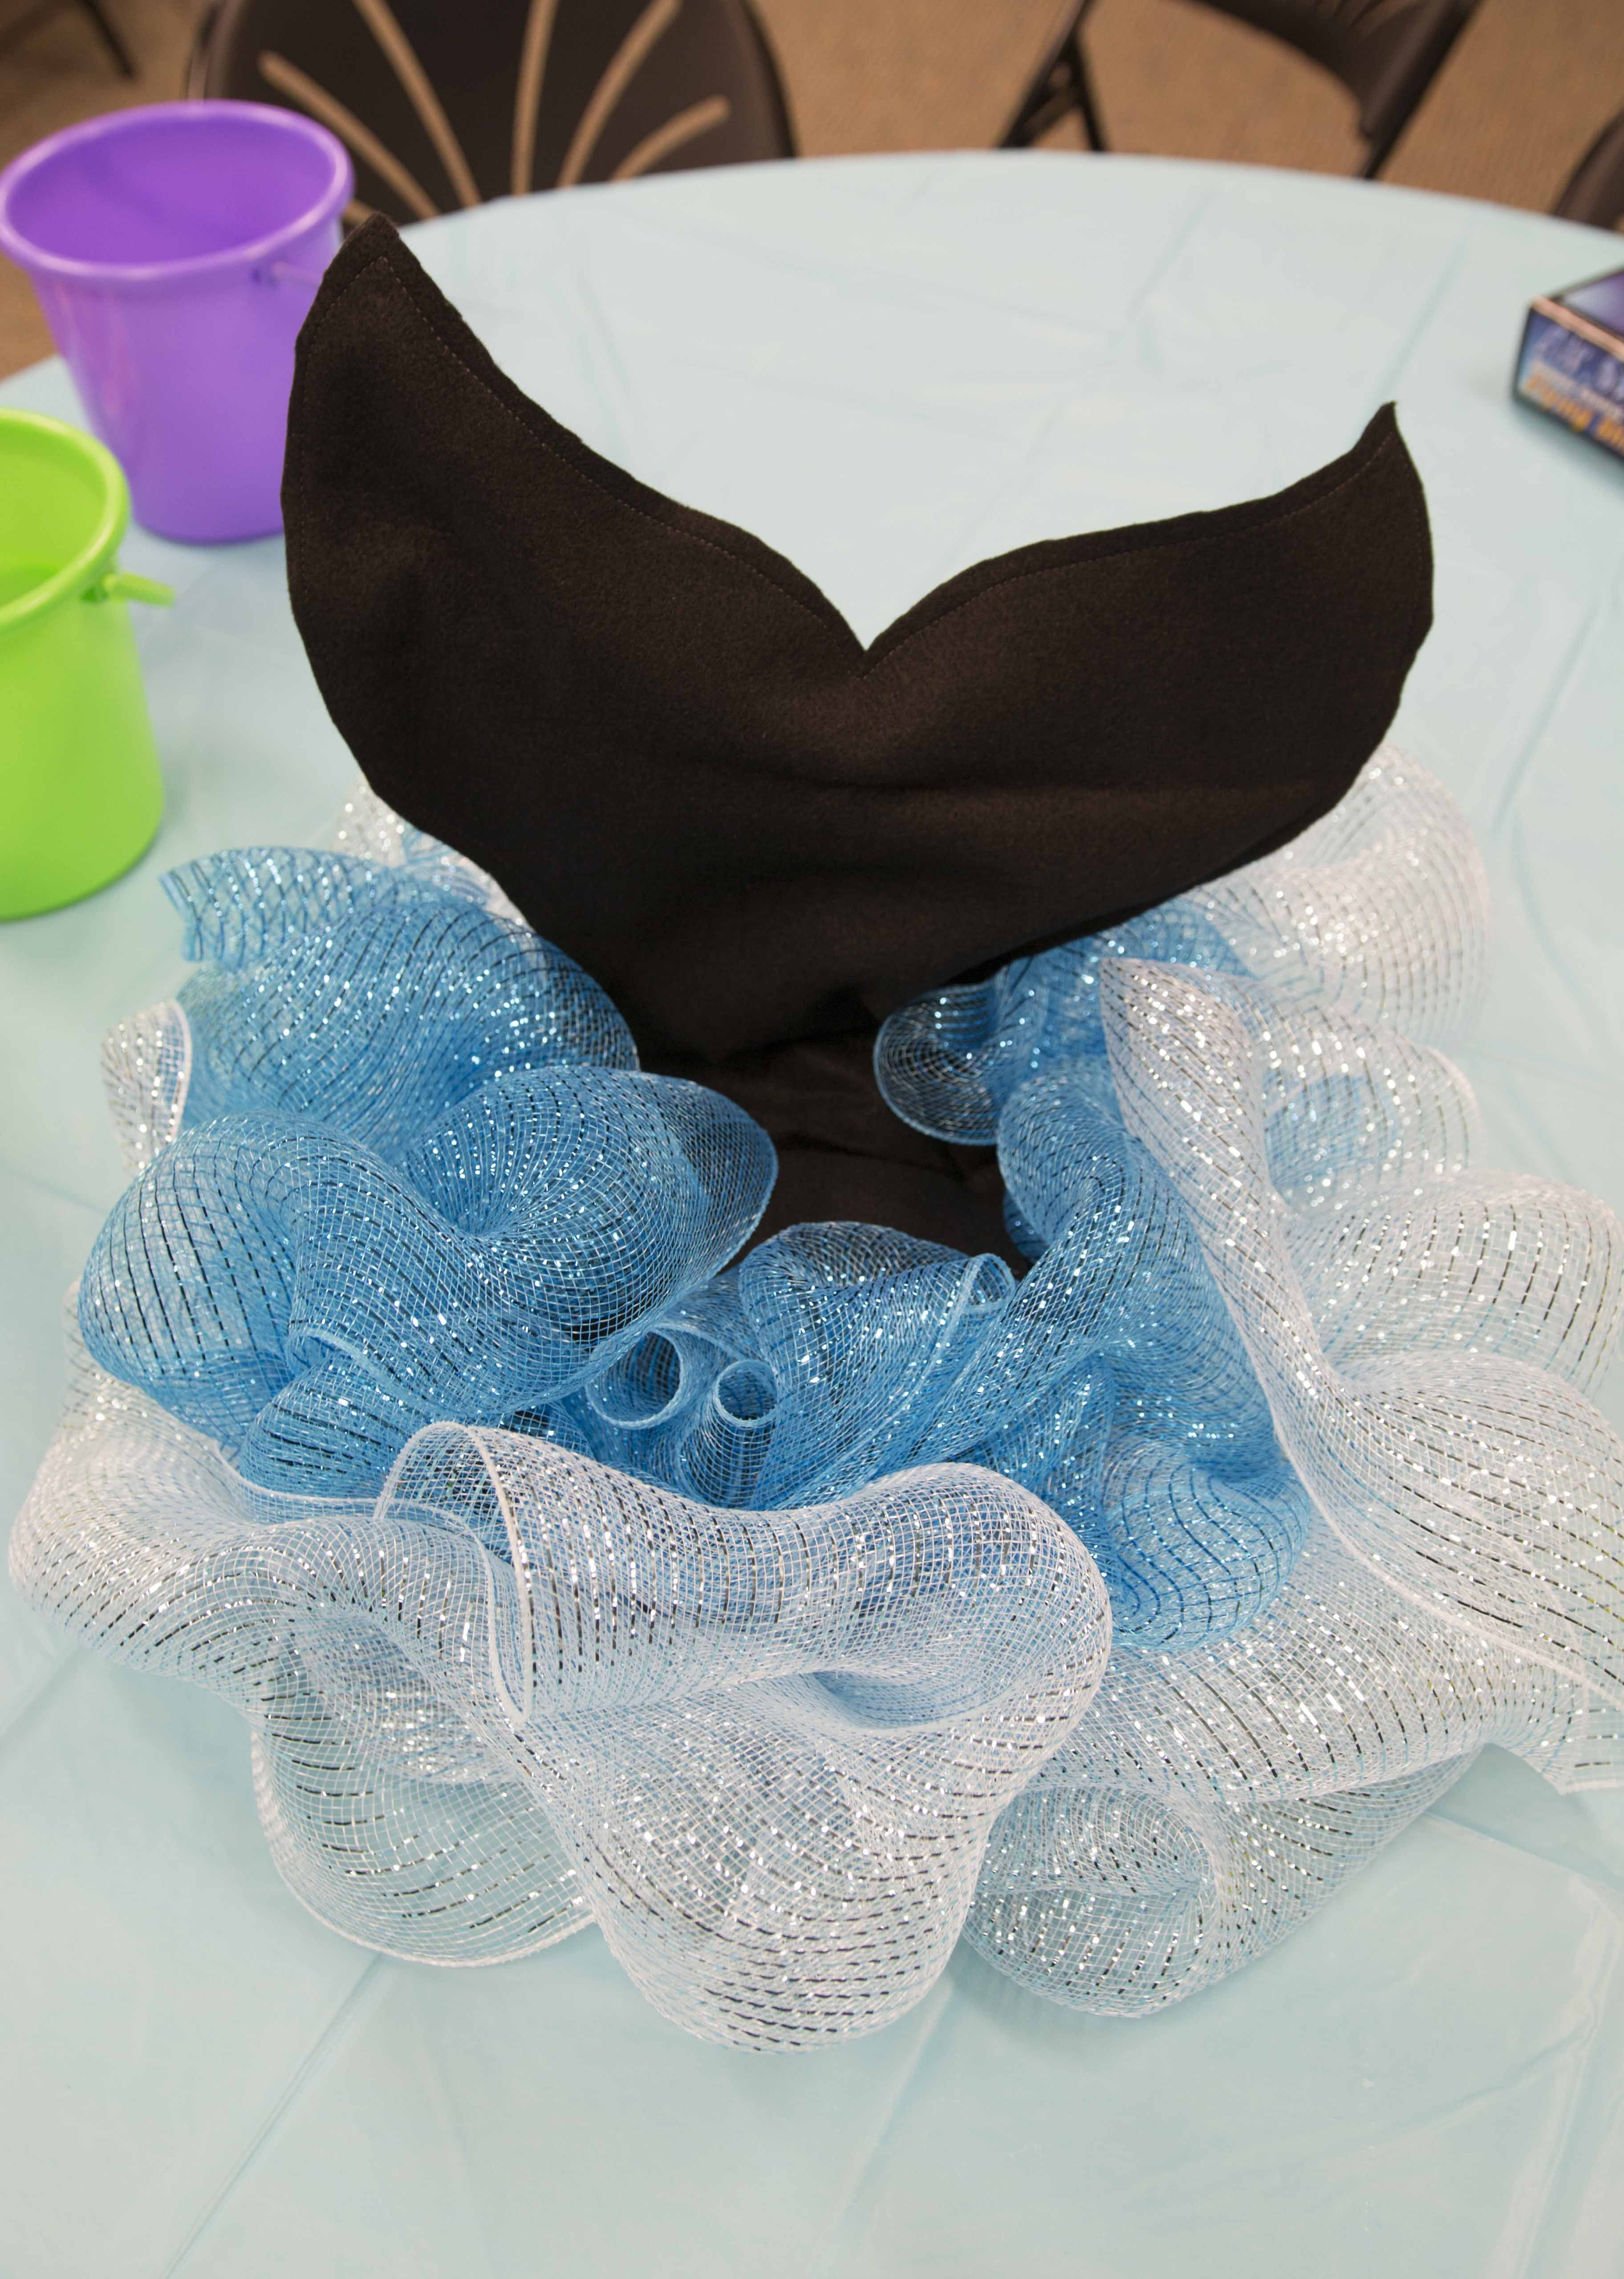 Whale Tail Table Topper Underwater Decoration Idea For Ocean Commotion Vbs 2016